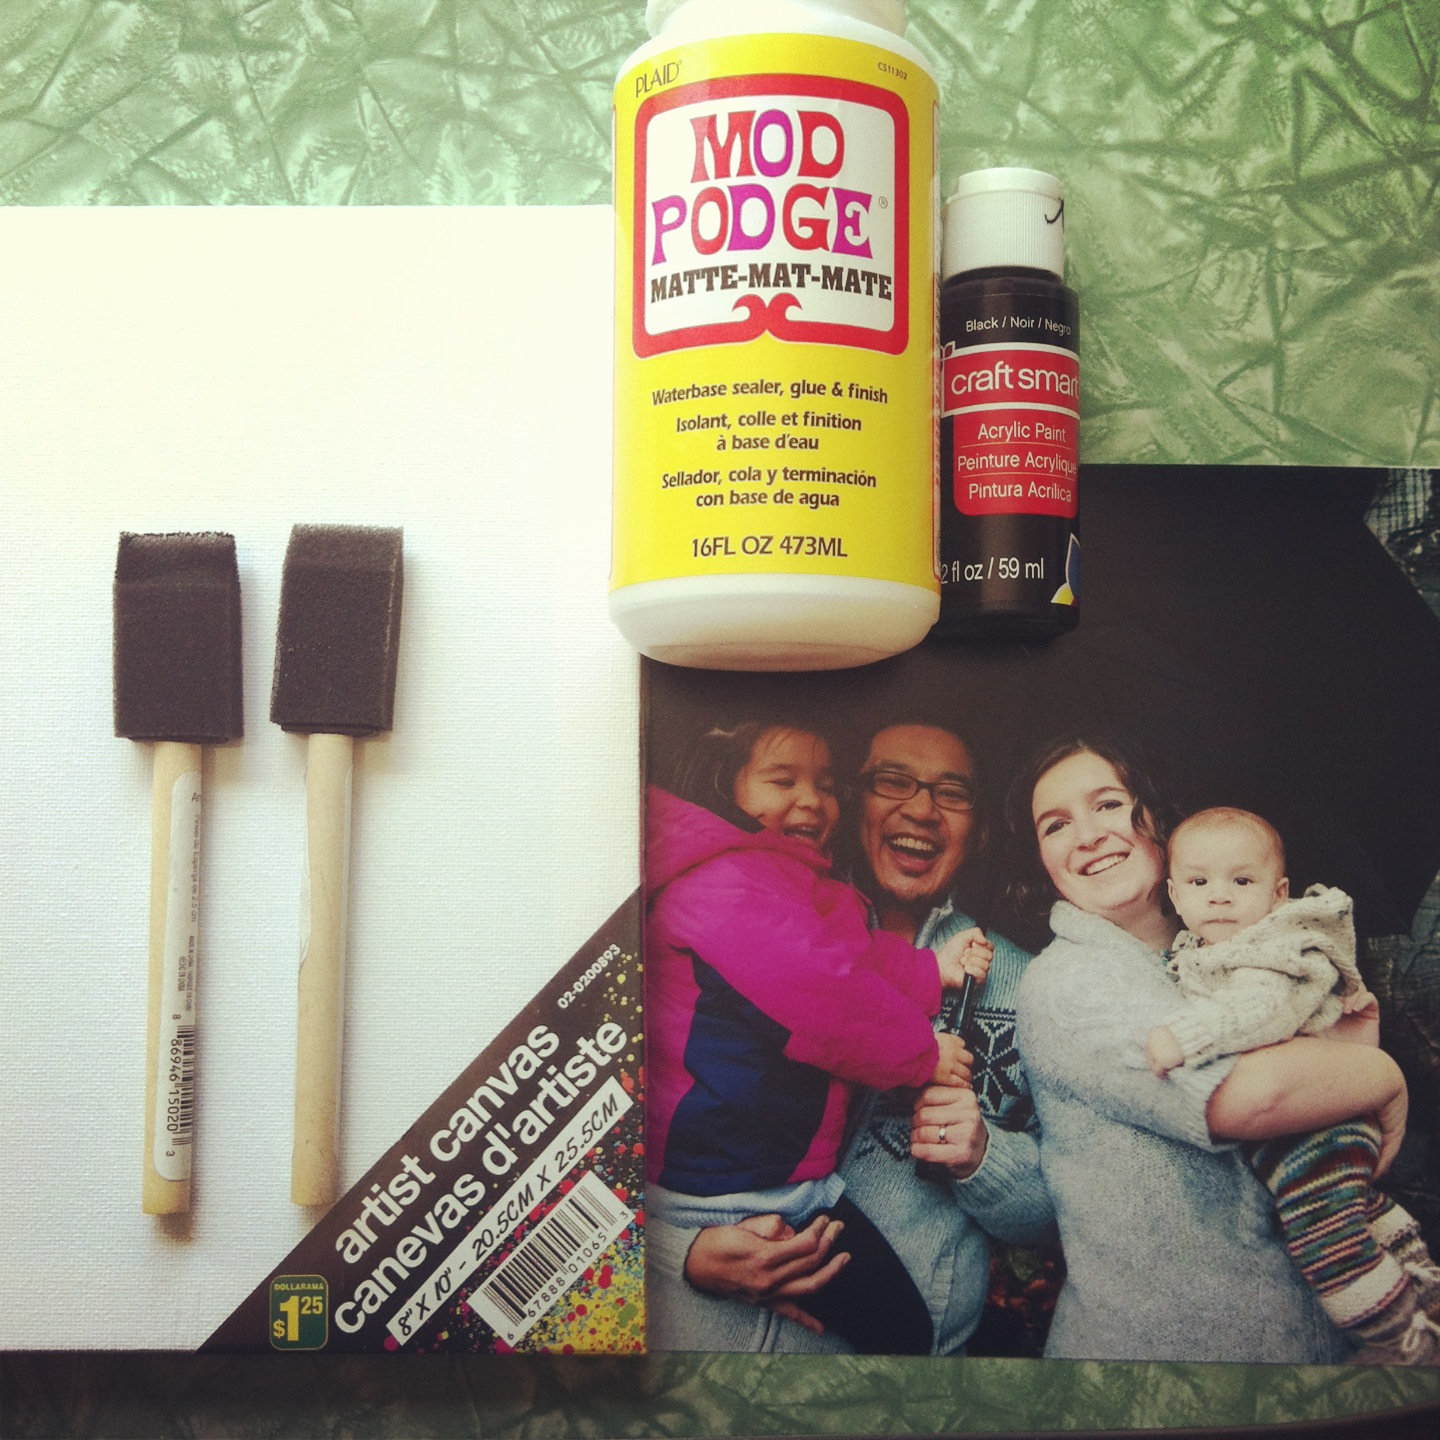 Mounting photo to canvas tutorial A great handmade gift for under $5.00 10